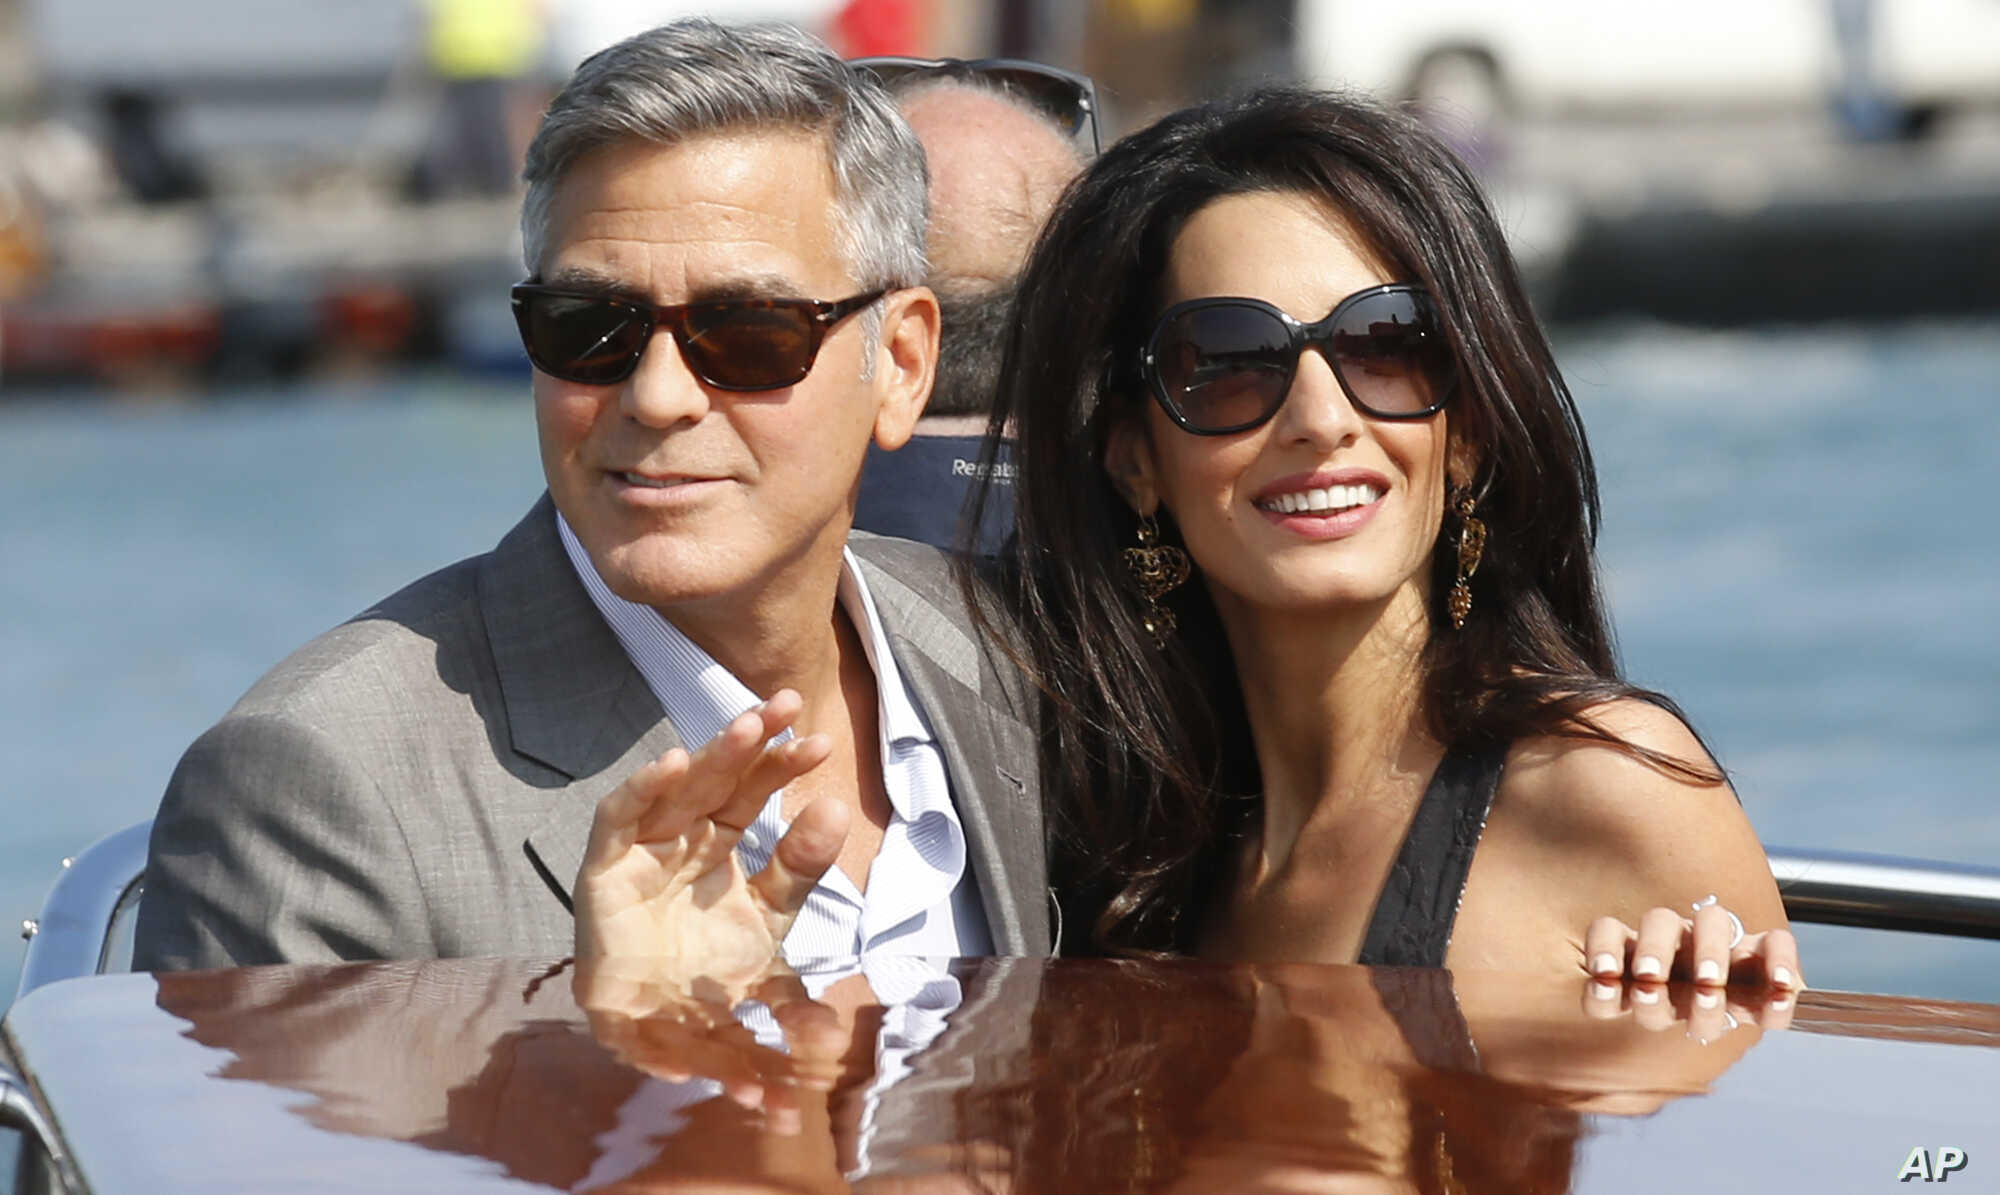 George Clooney S Wedding Brings Out Stars In Venice Voice Of America English